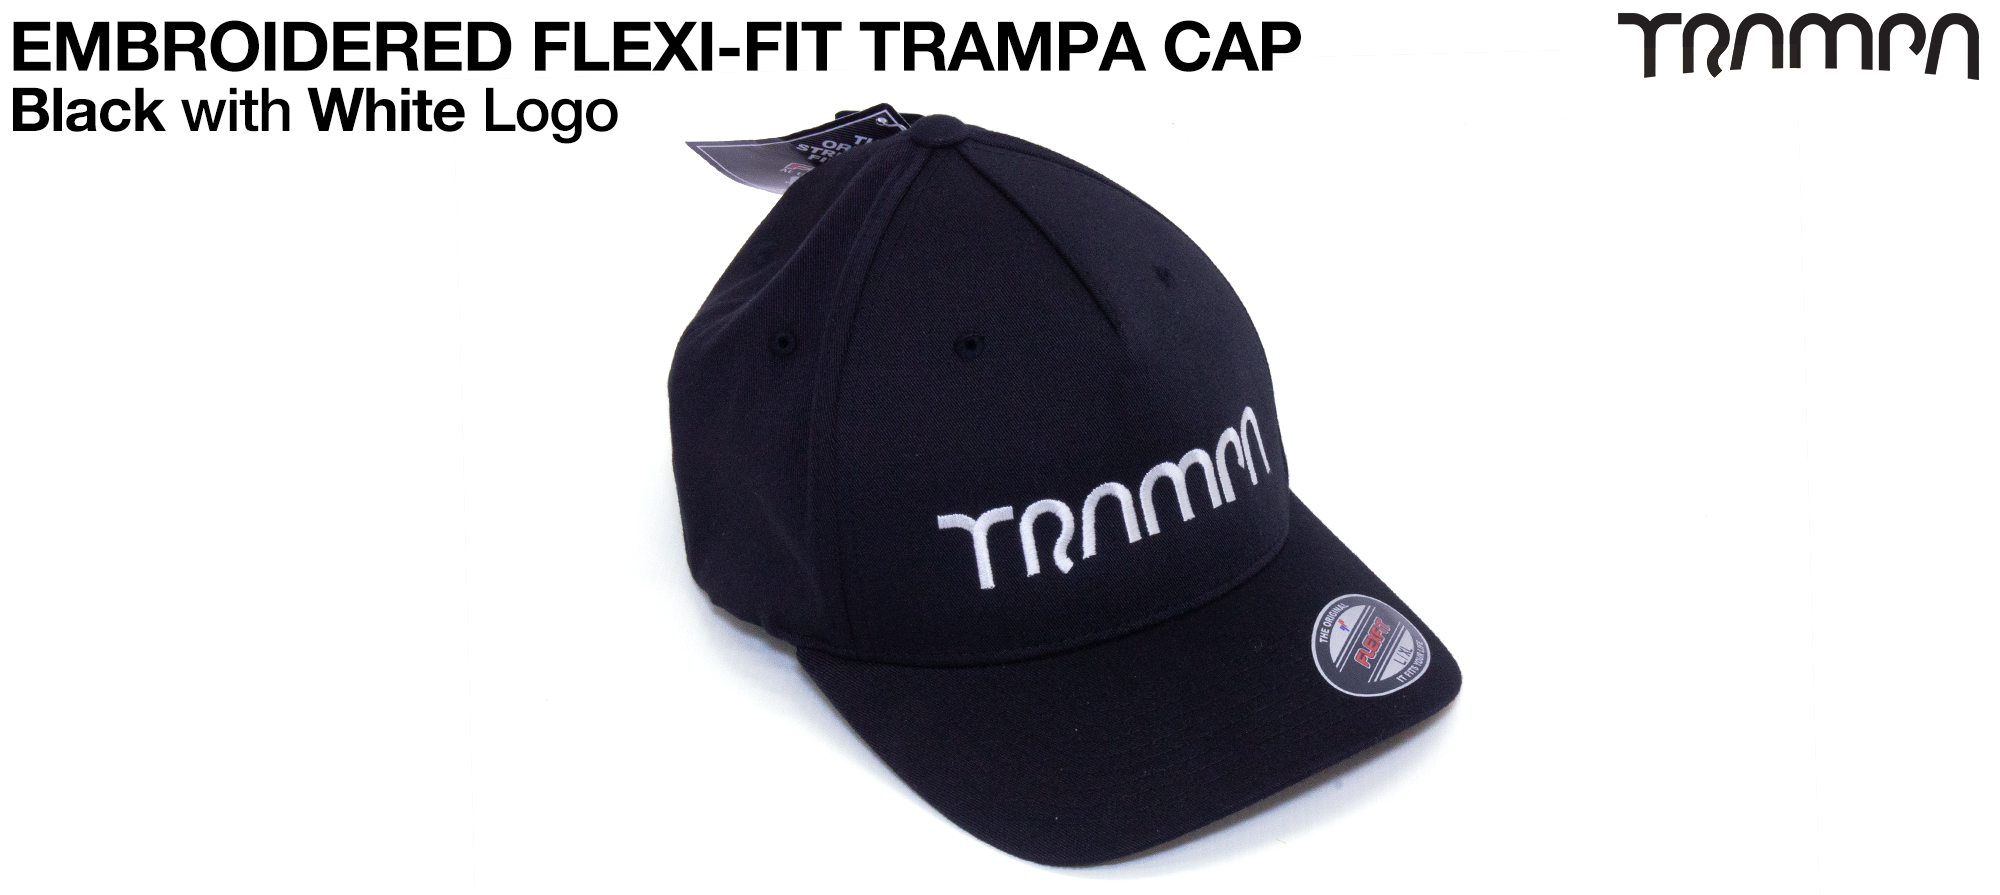 BLACK FLEXI-FIT Baseball Cap with WHITE logo embroidered